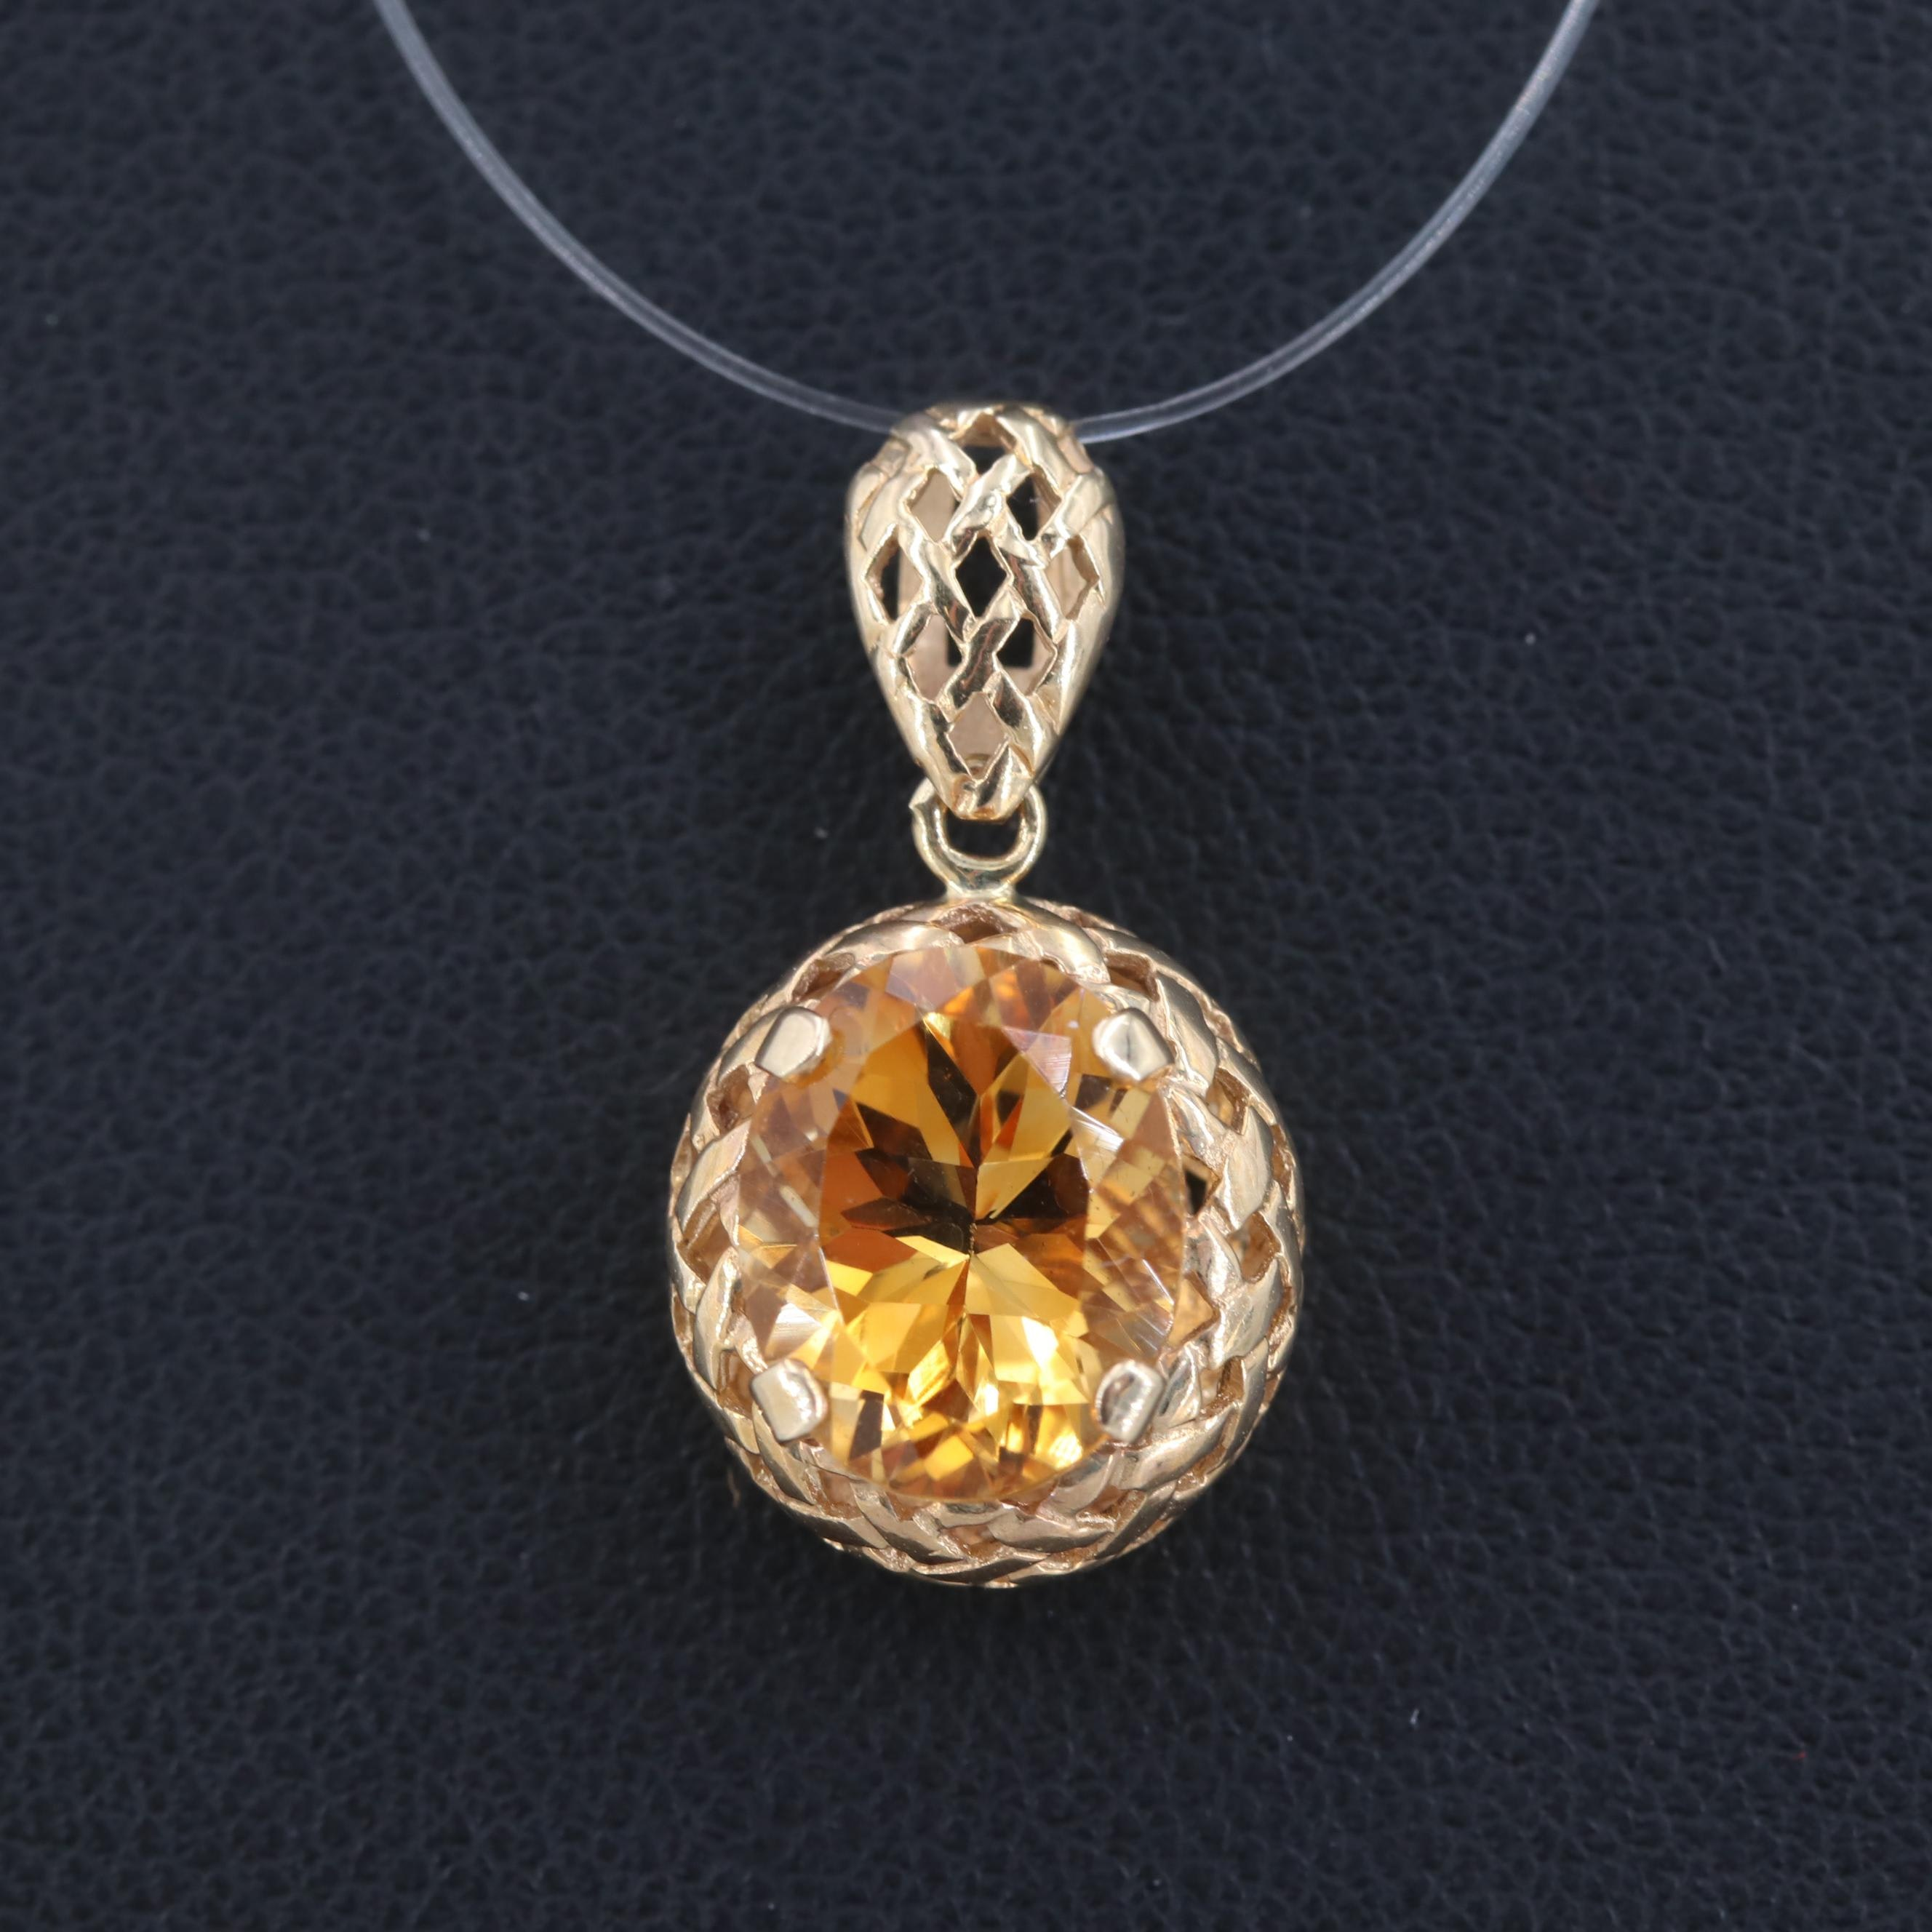 14K Yellow Gold Citrine Pendant